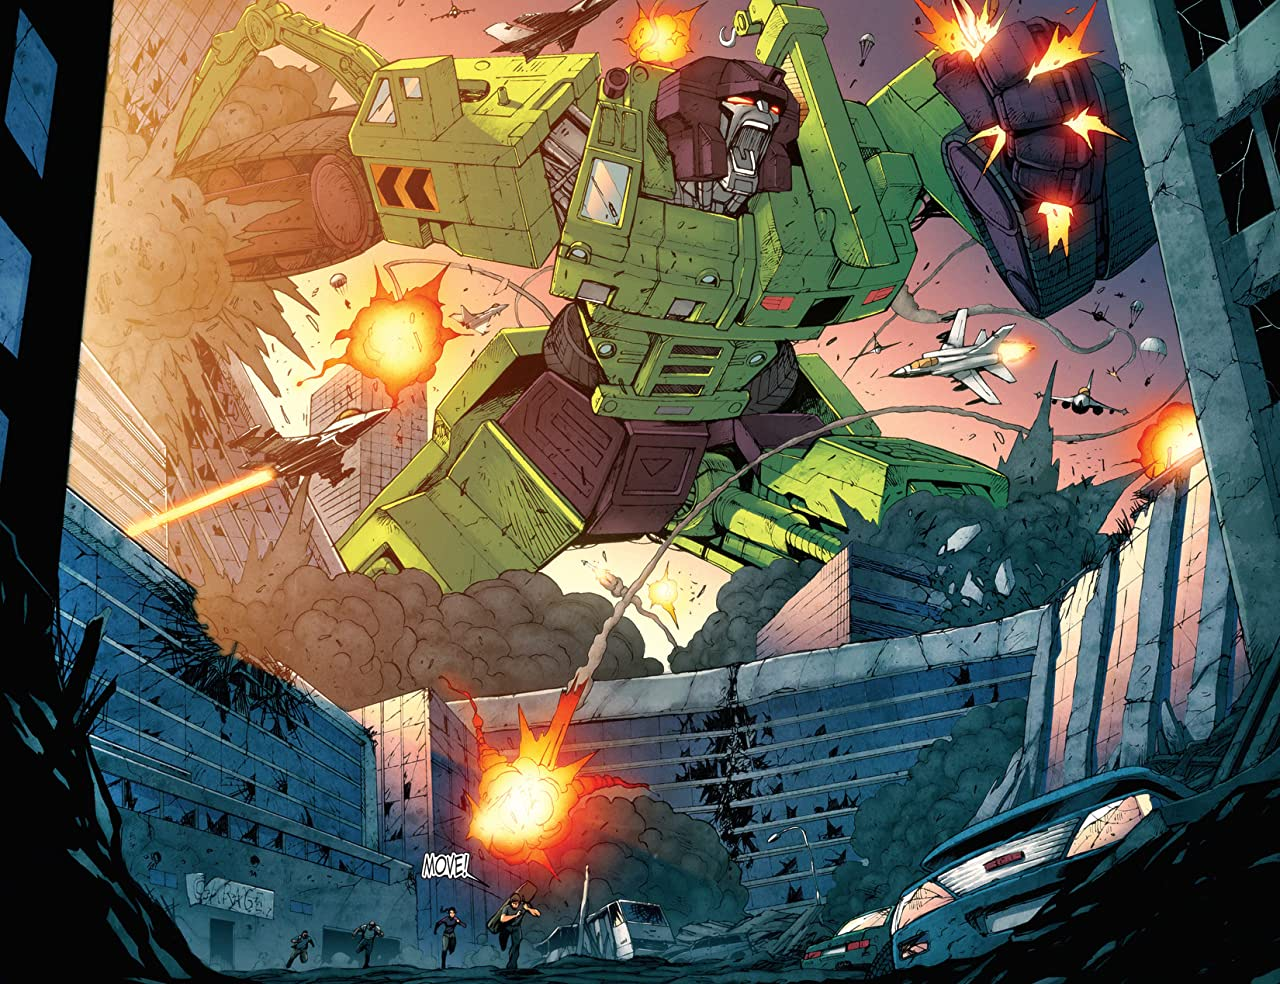 Transformers: All Hail Megatron #11